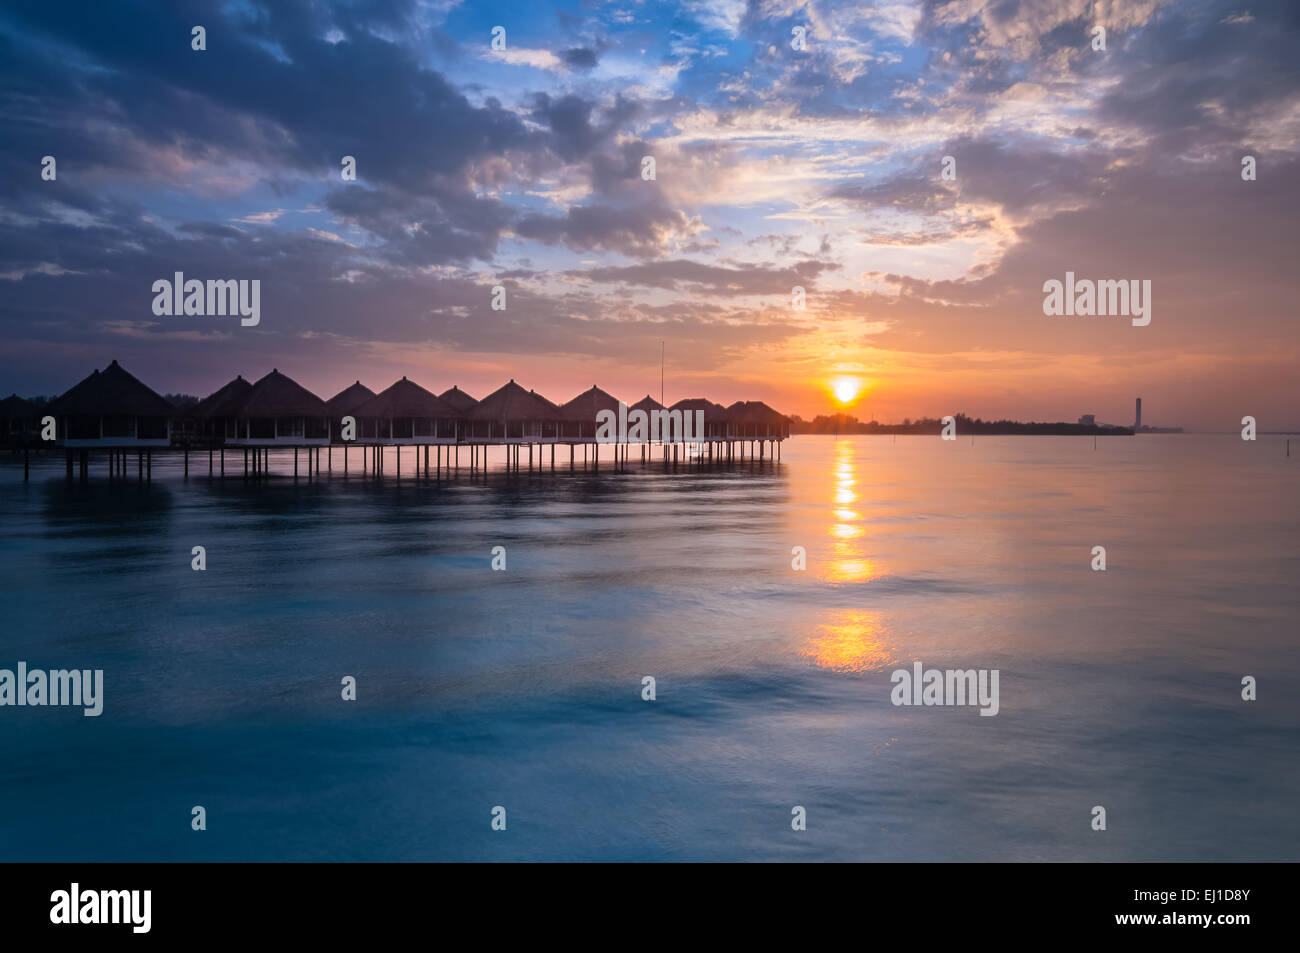 Sunrise from floating resort at bagan lalang selangor - Stock Image